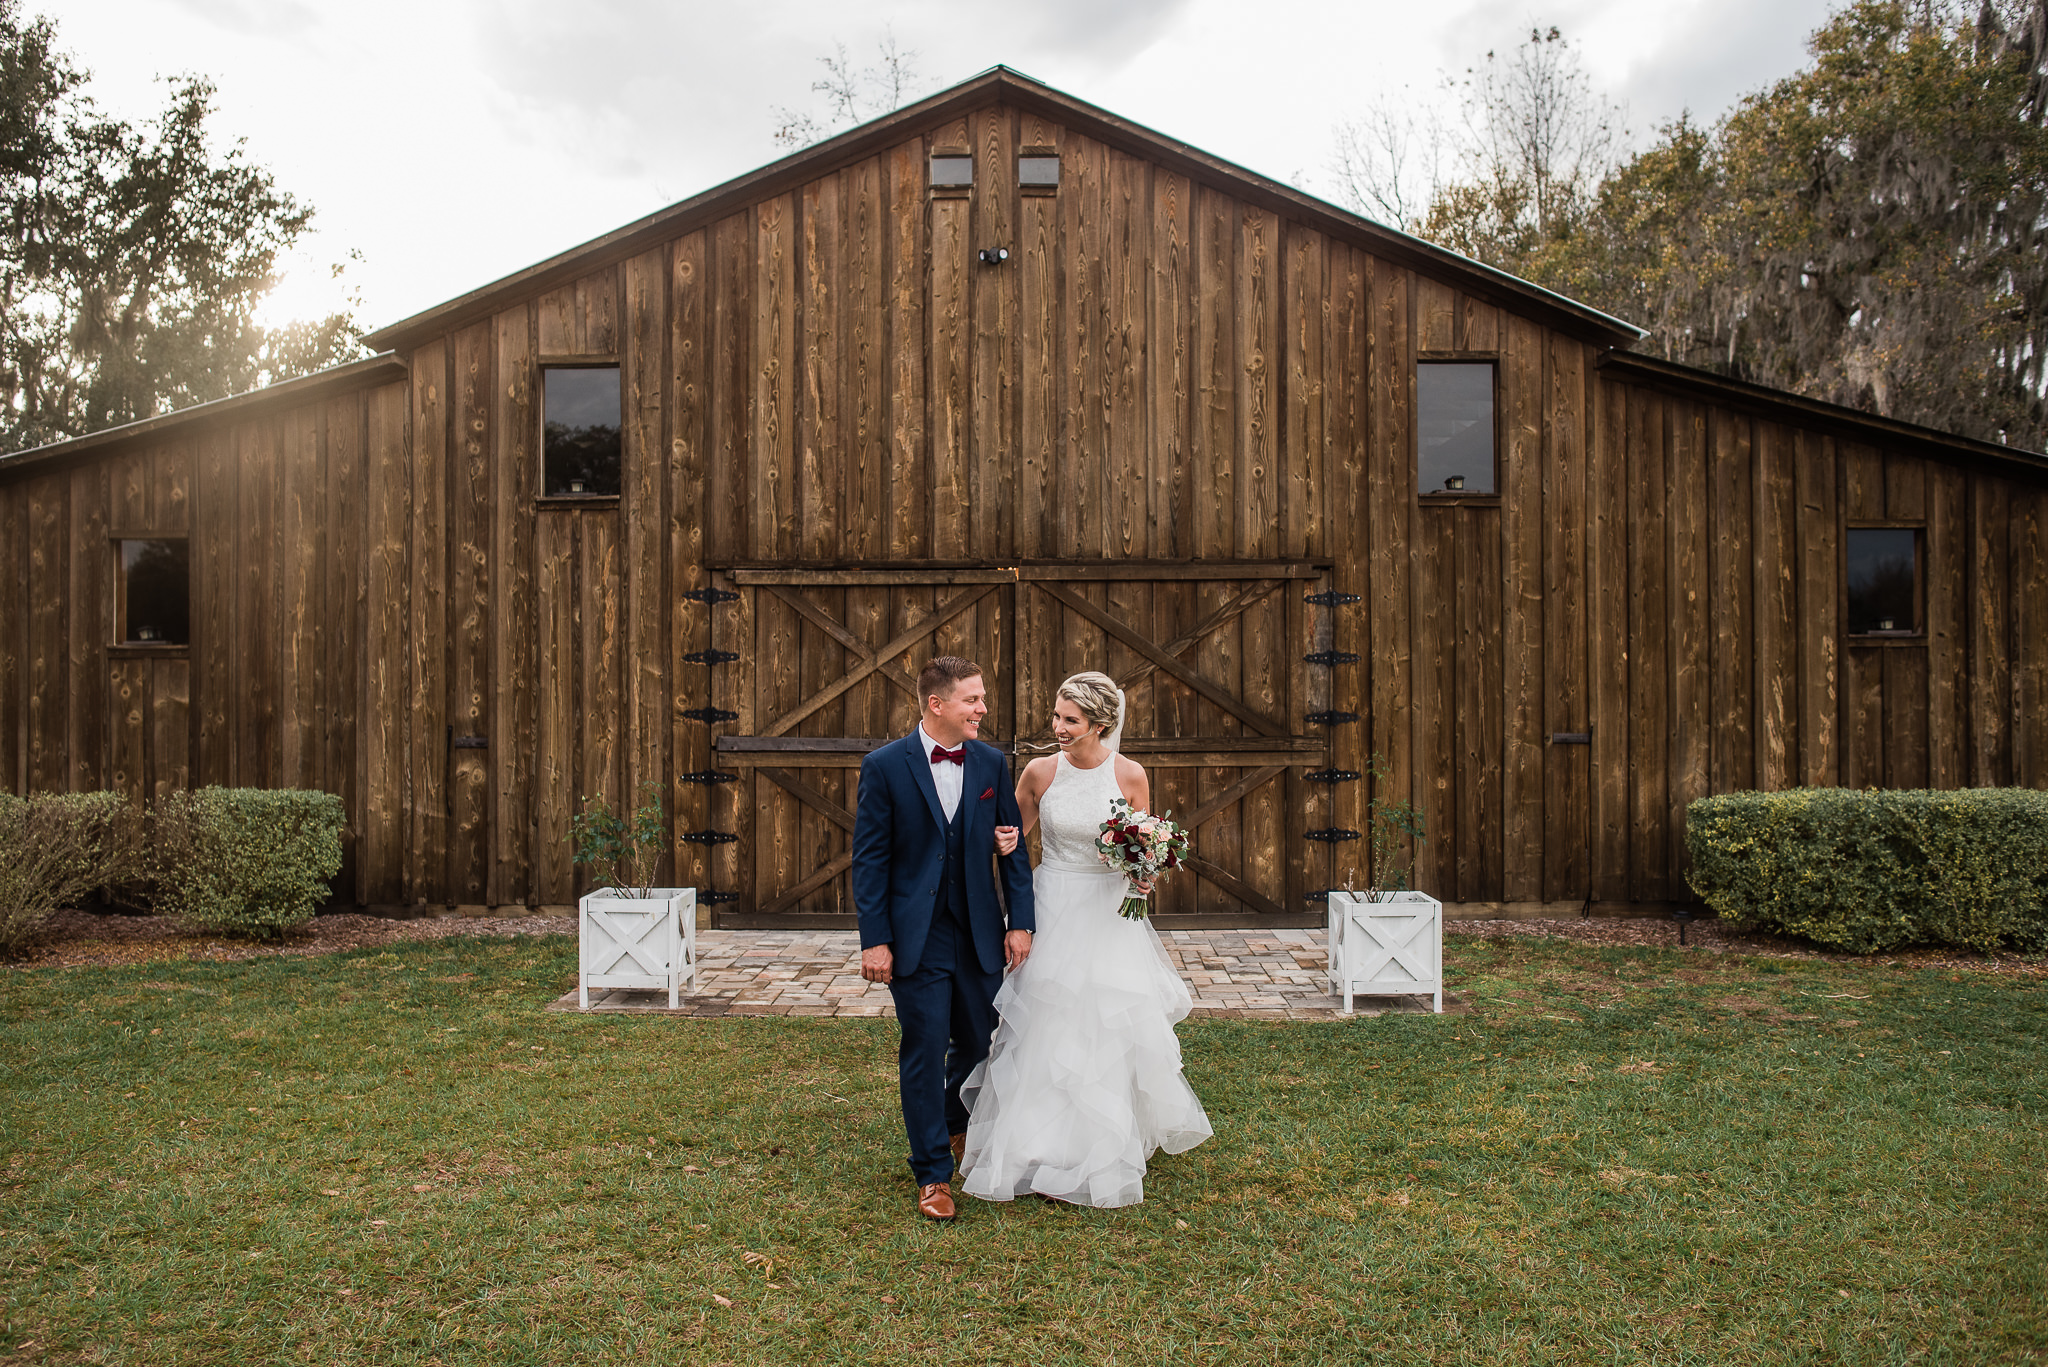 TAMPA_WEDDING_PHOTOGRAPHER_DRMZ_SPARROW_BARN_31.jpg